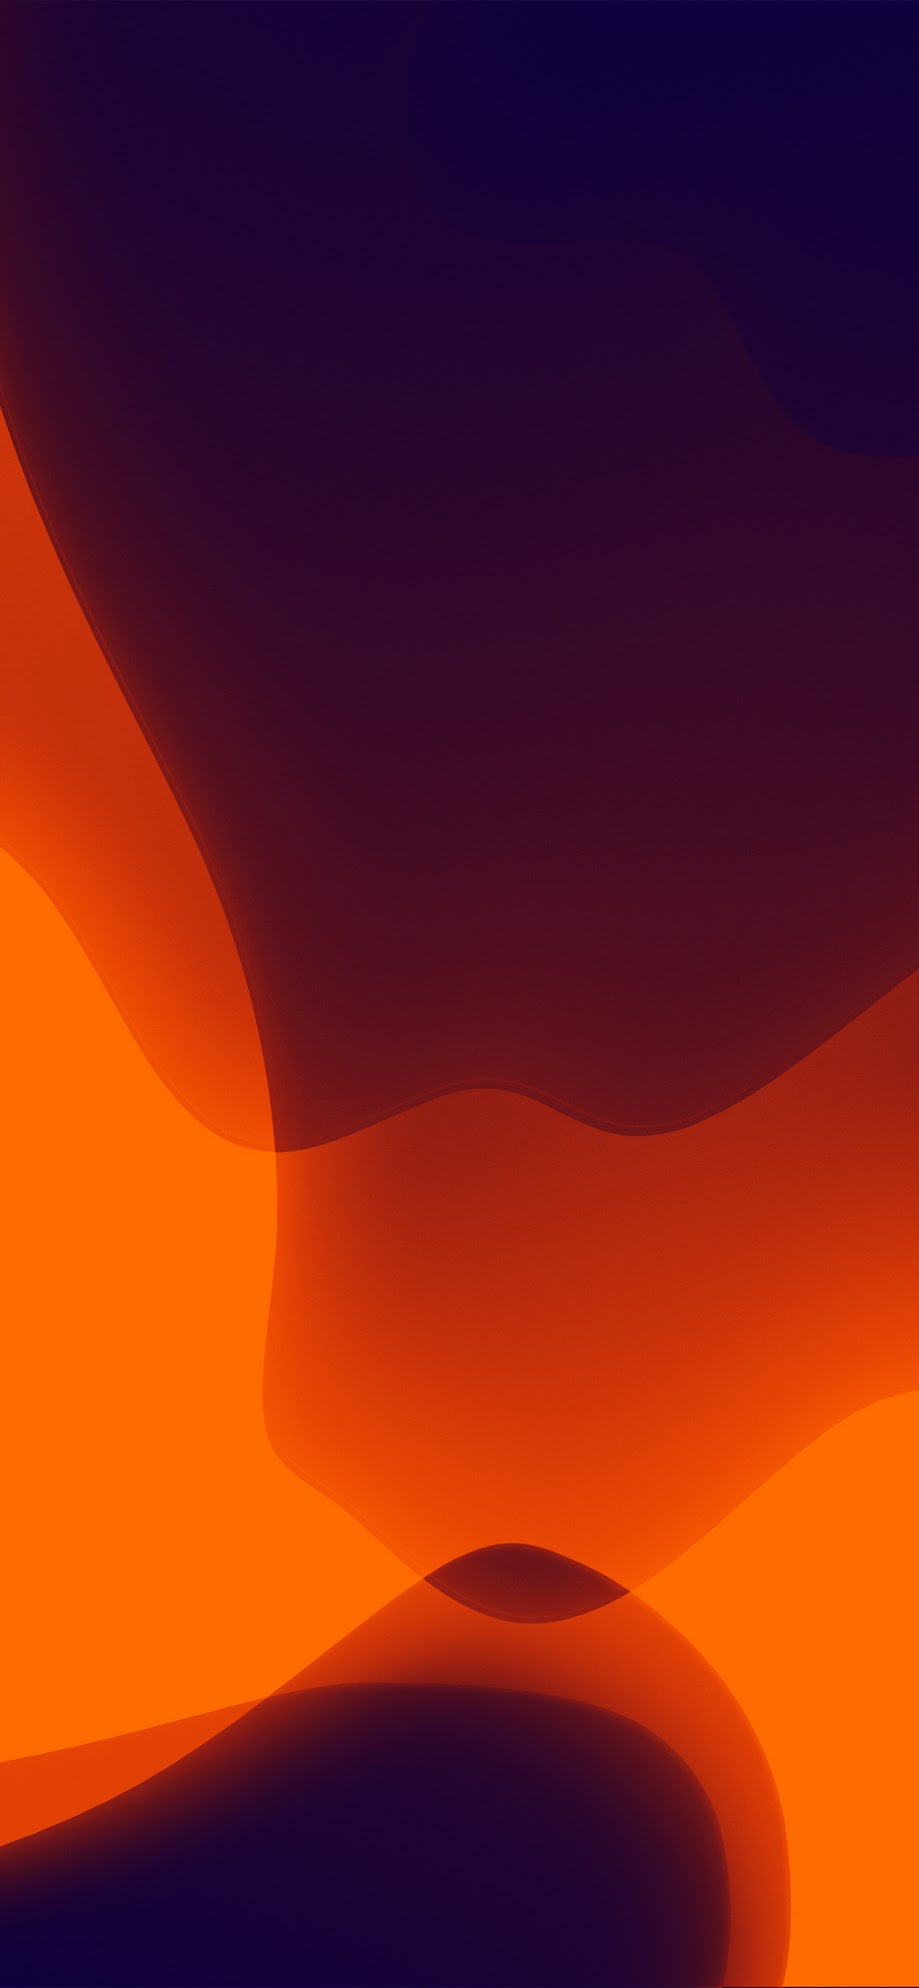 Ios 13 Wallpaper In Various Colors For Iphone And Ipad